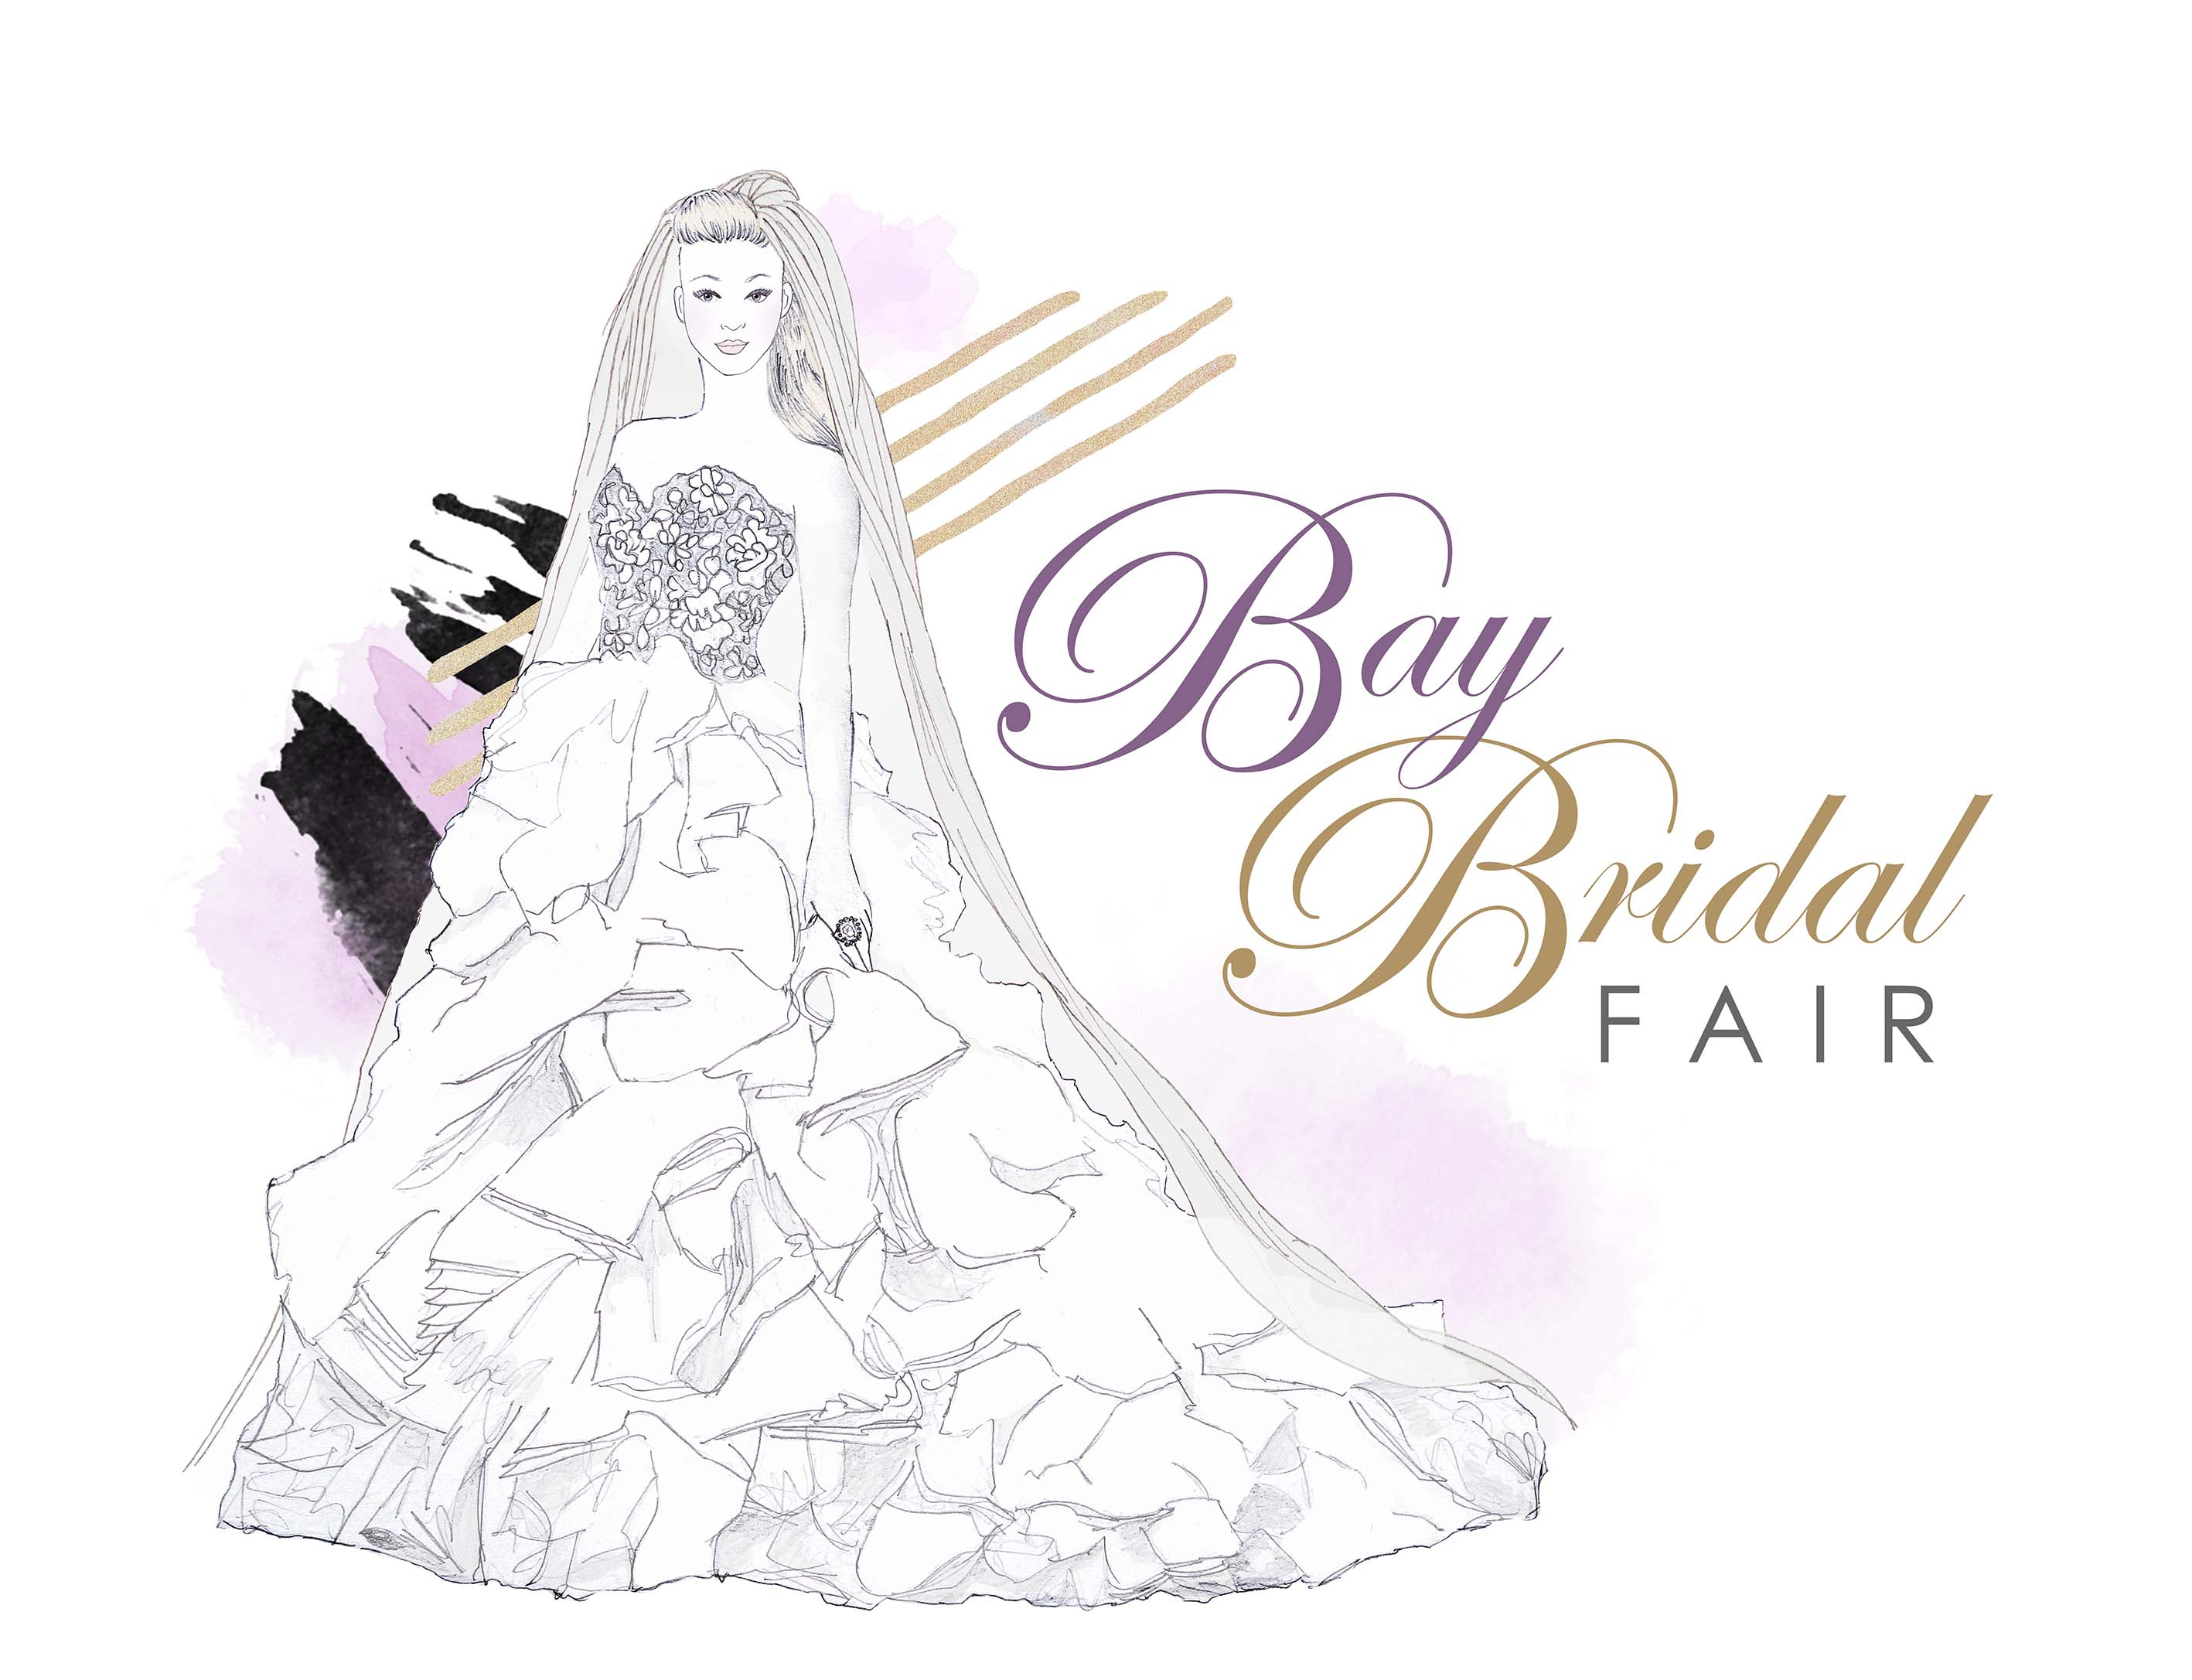 logo rebranding rebrand design adelaide graphic designer sail and swan bay bridal fair